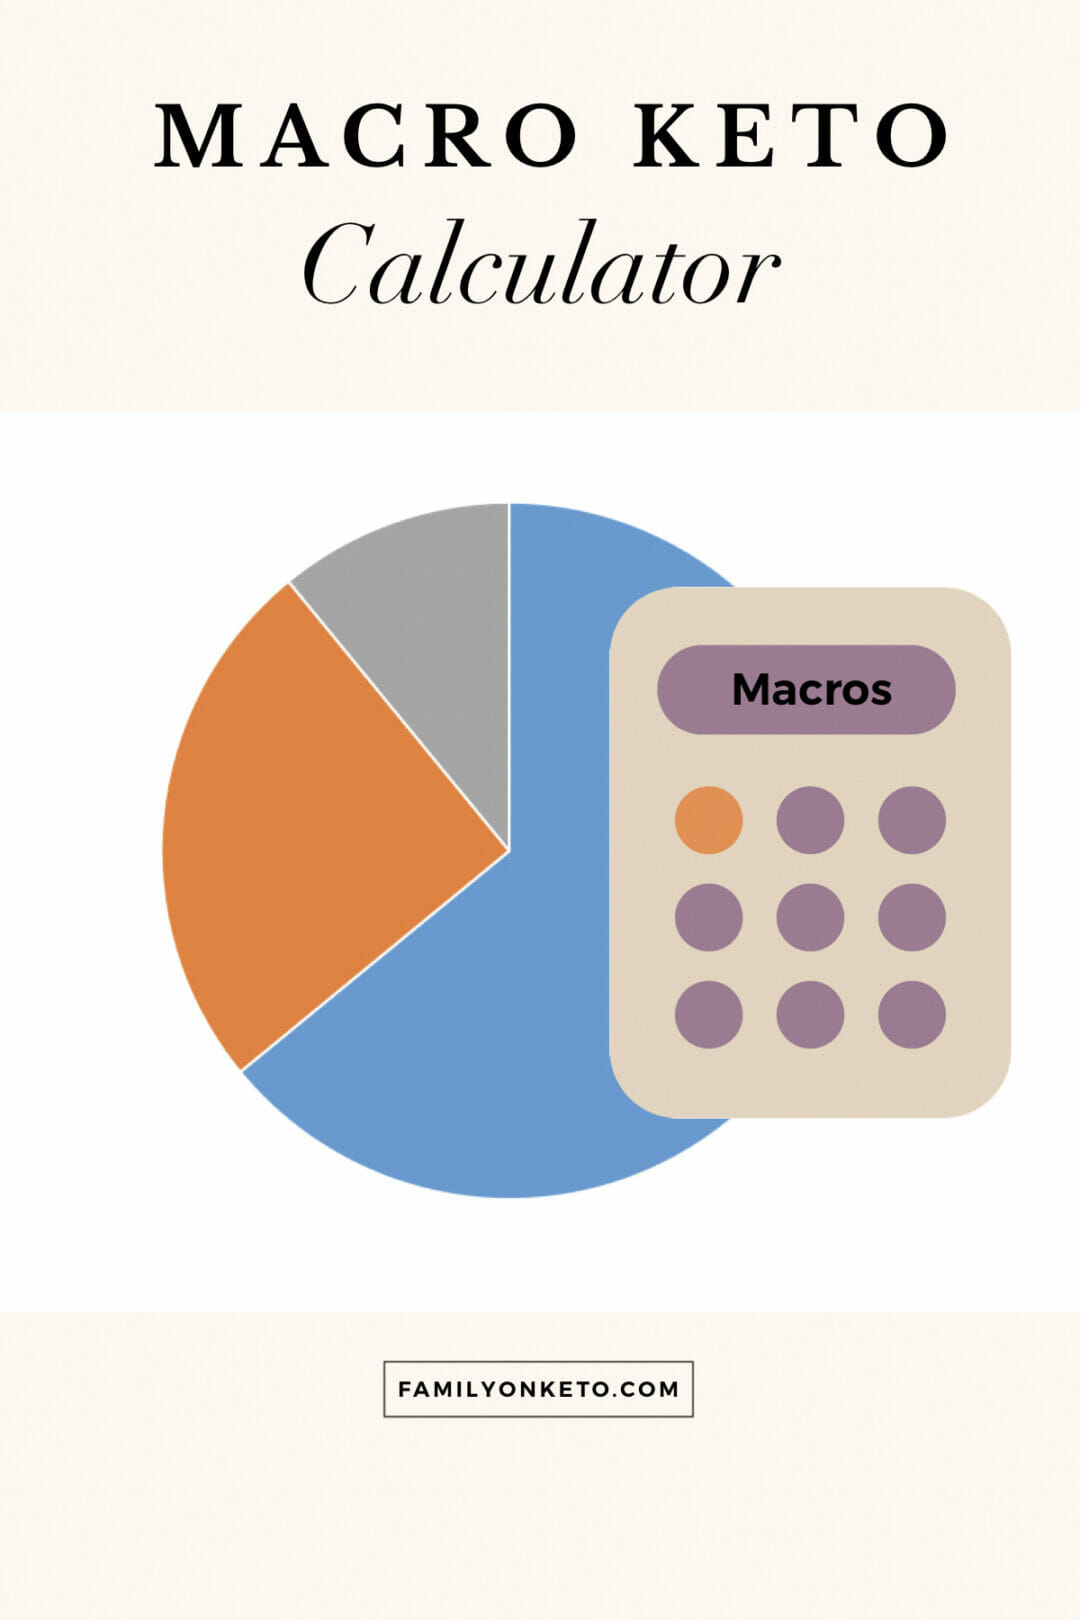 Keto macros calculator for keto diet